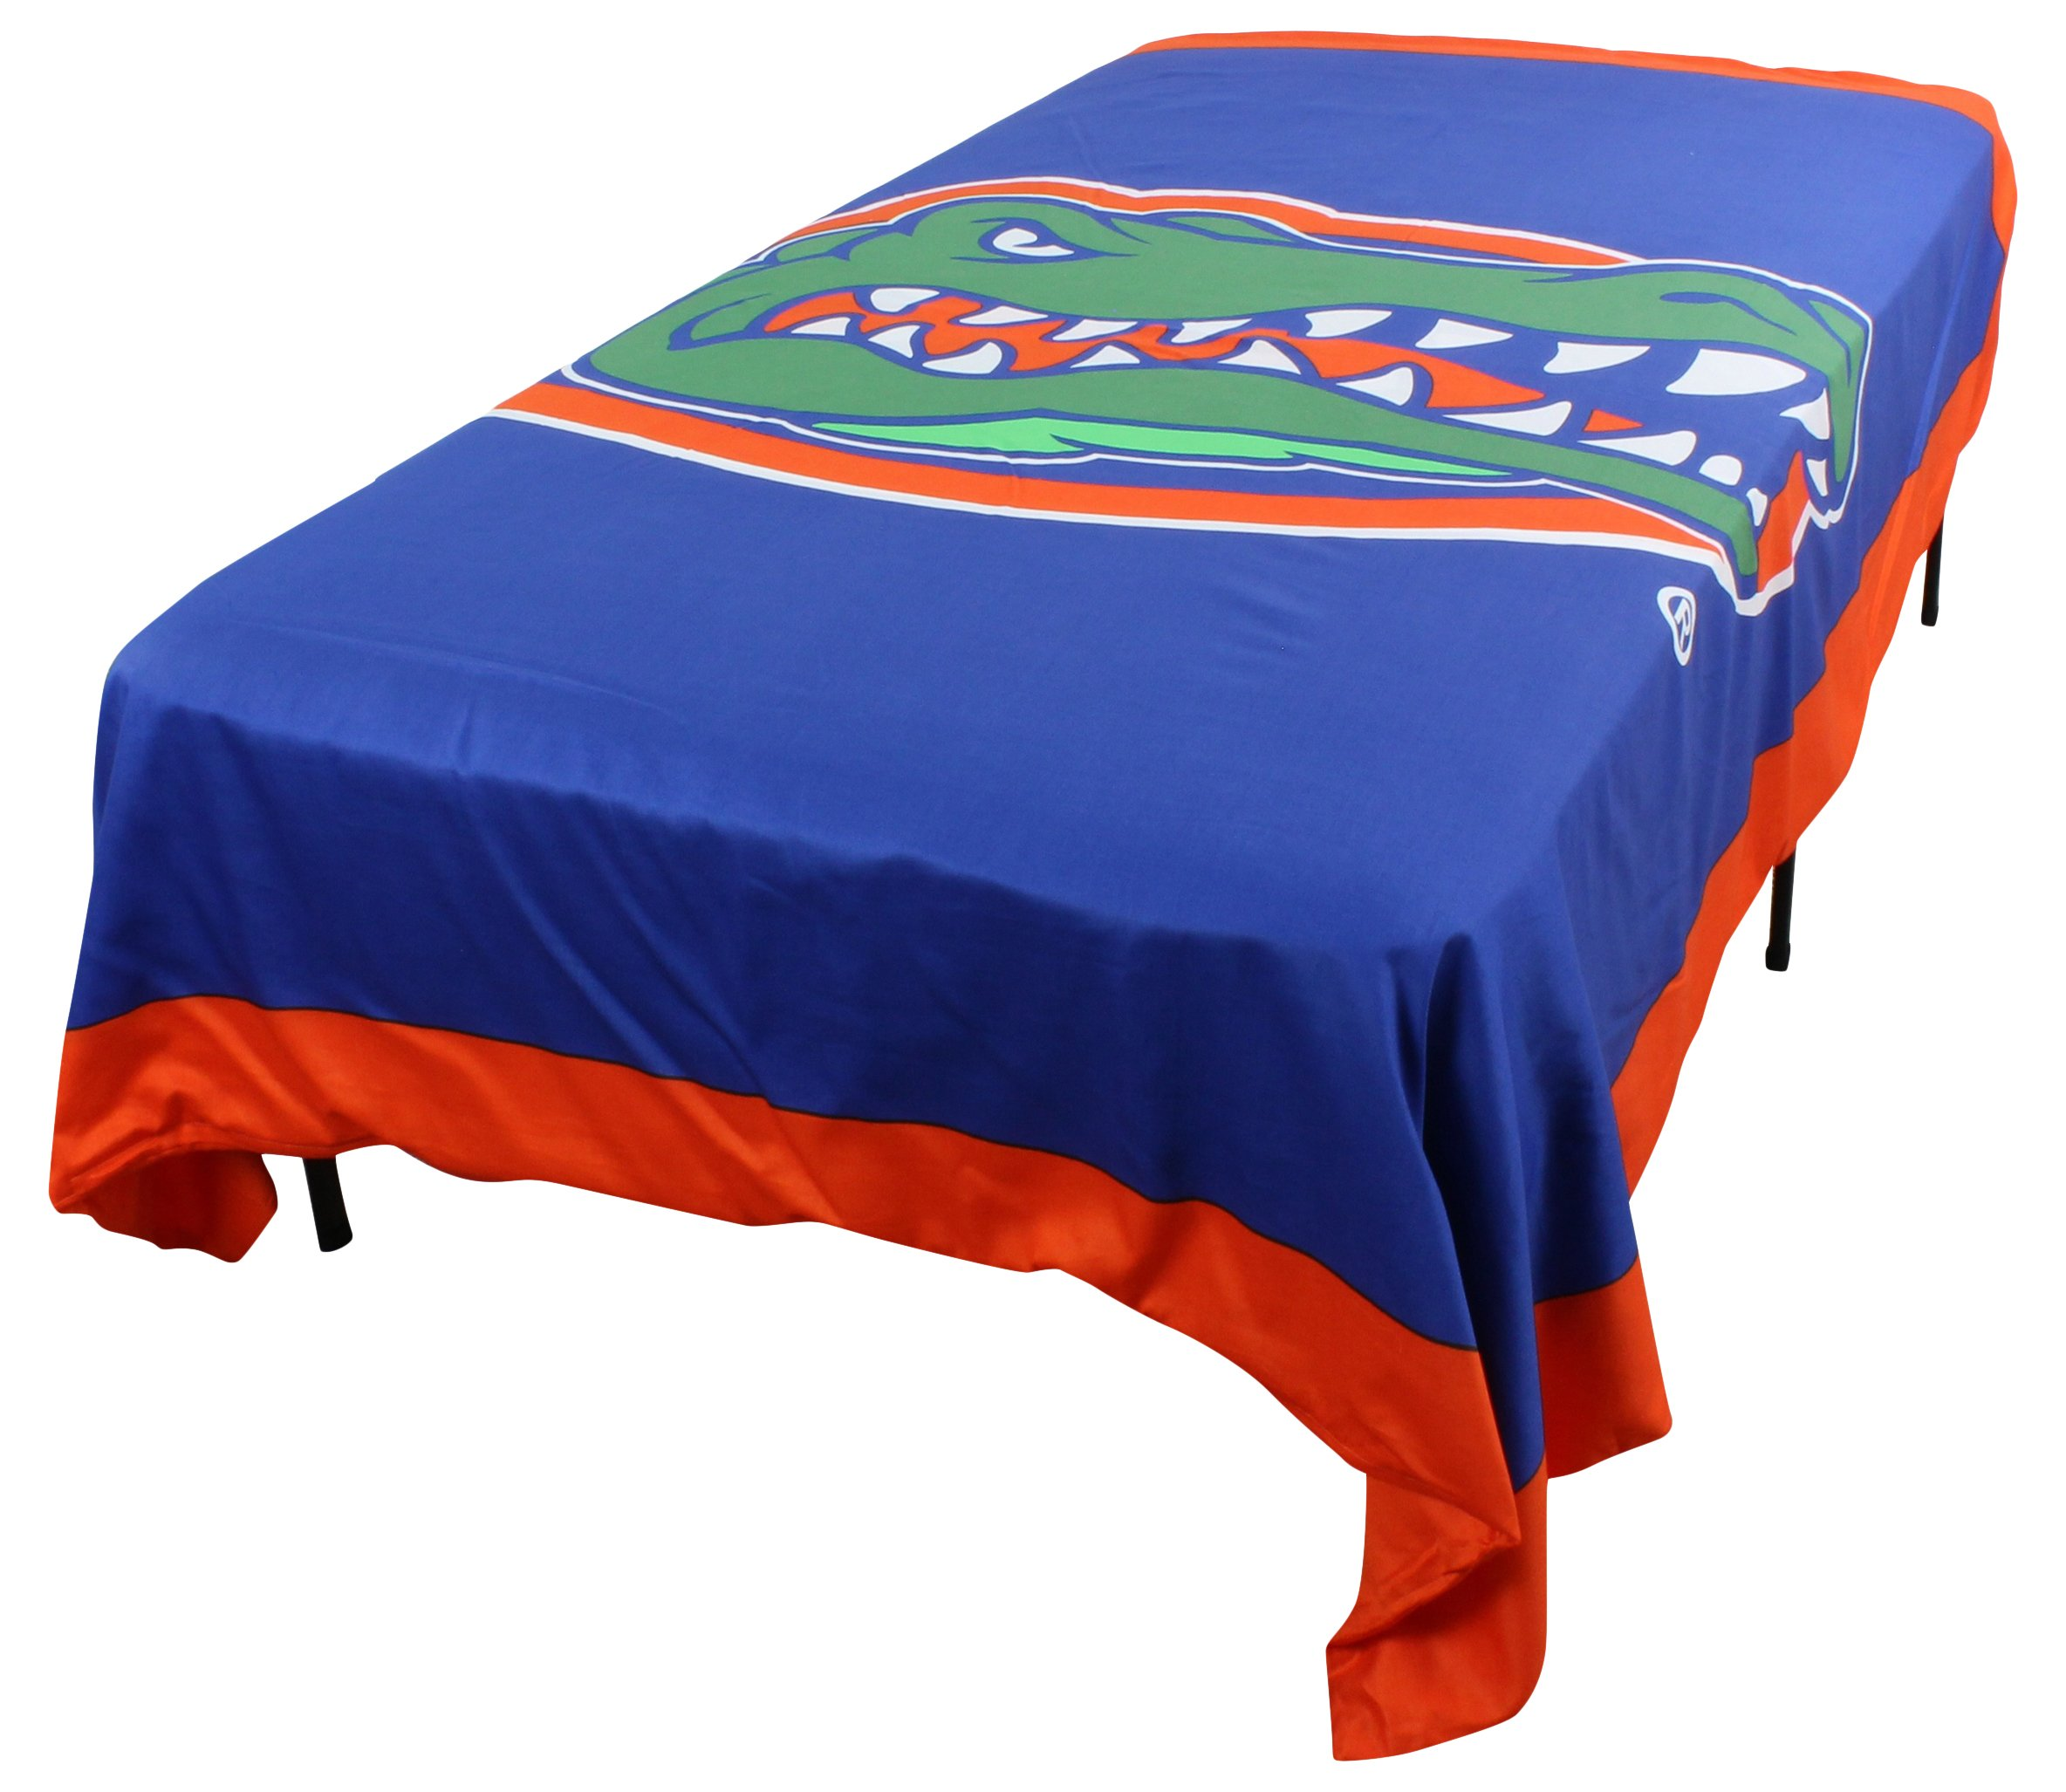 College Covers Florida Gators Duvet Cover/Summer Blanket, Twin